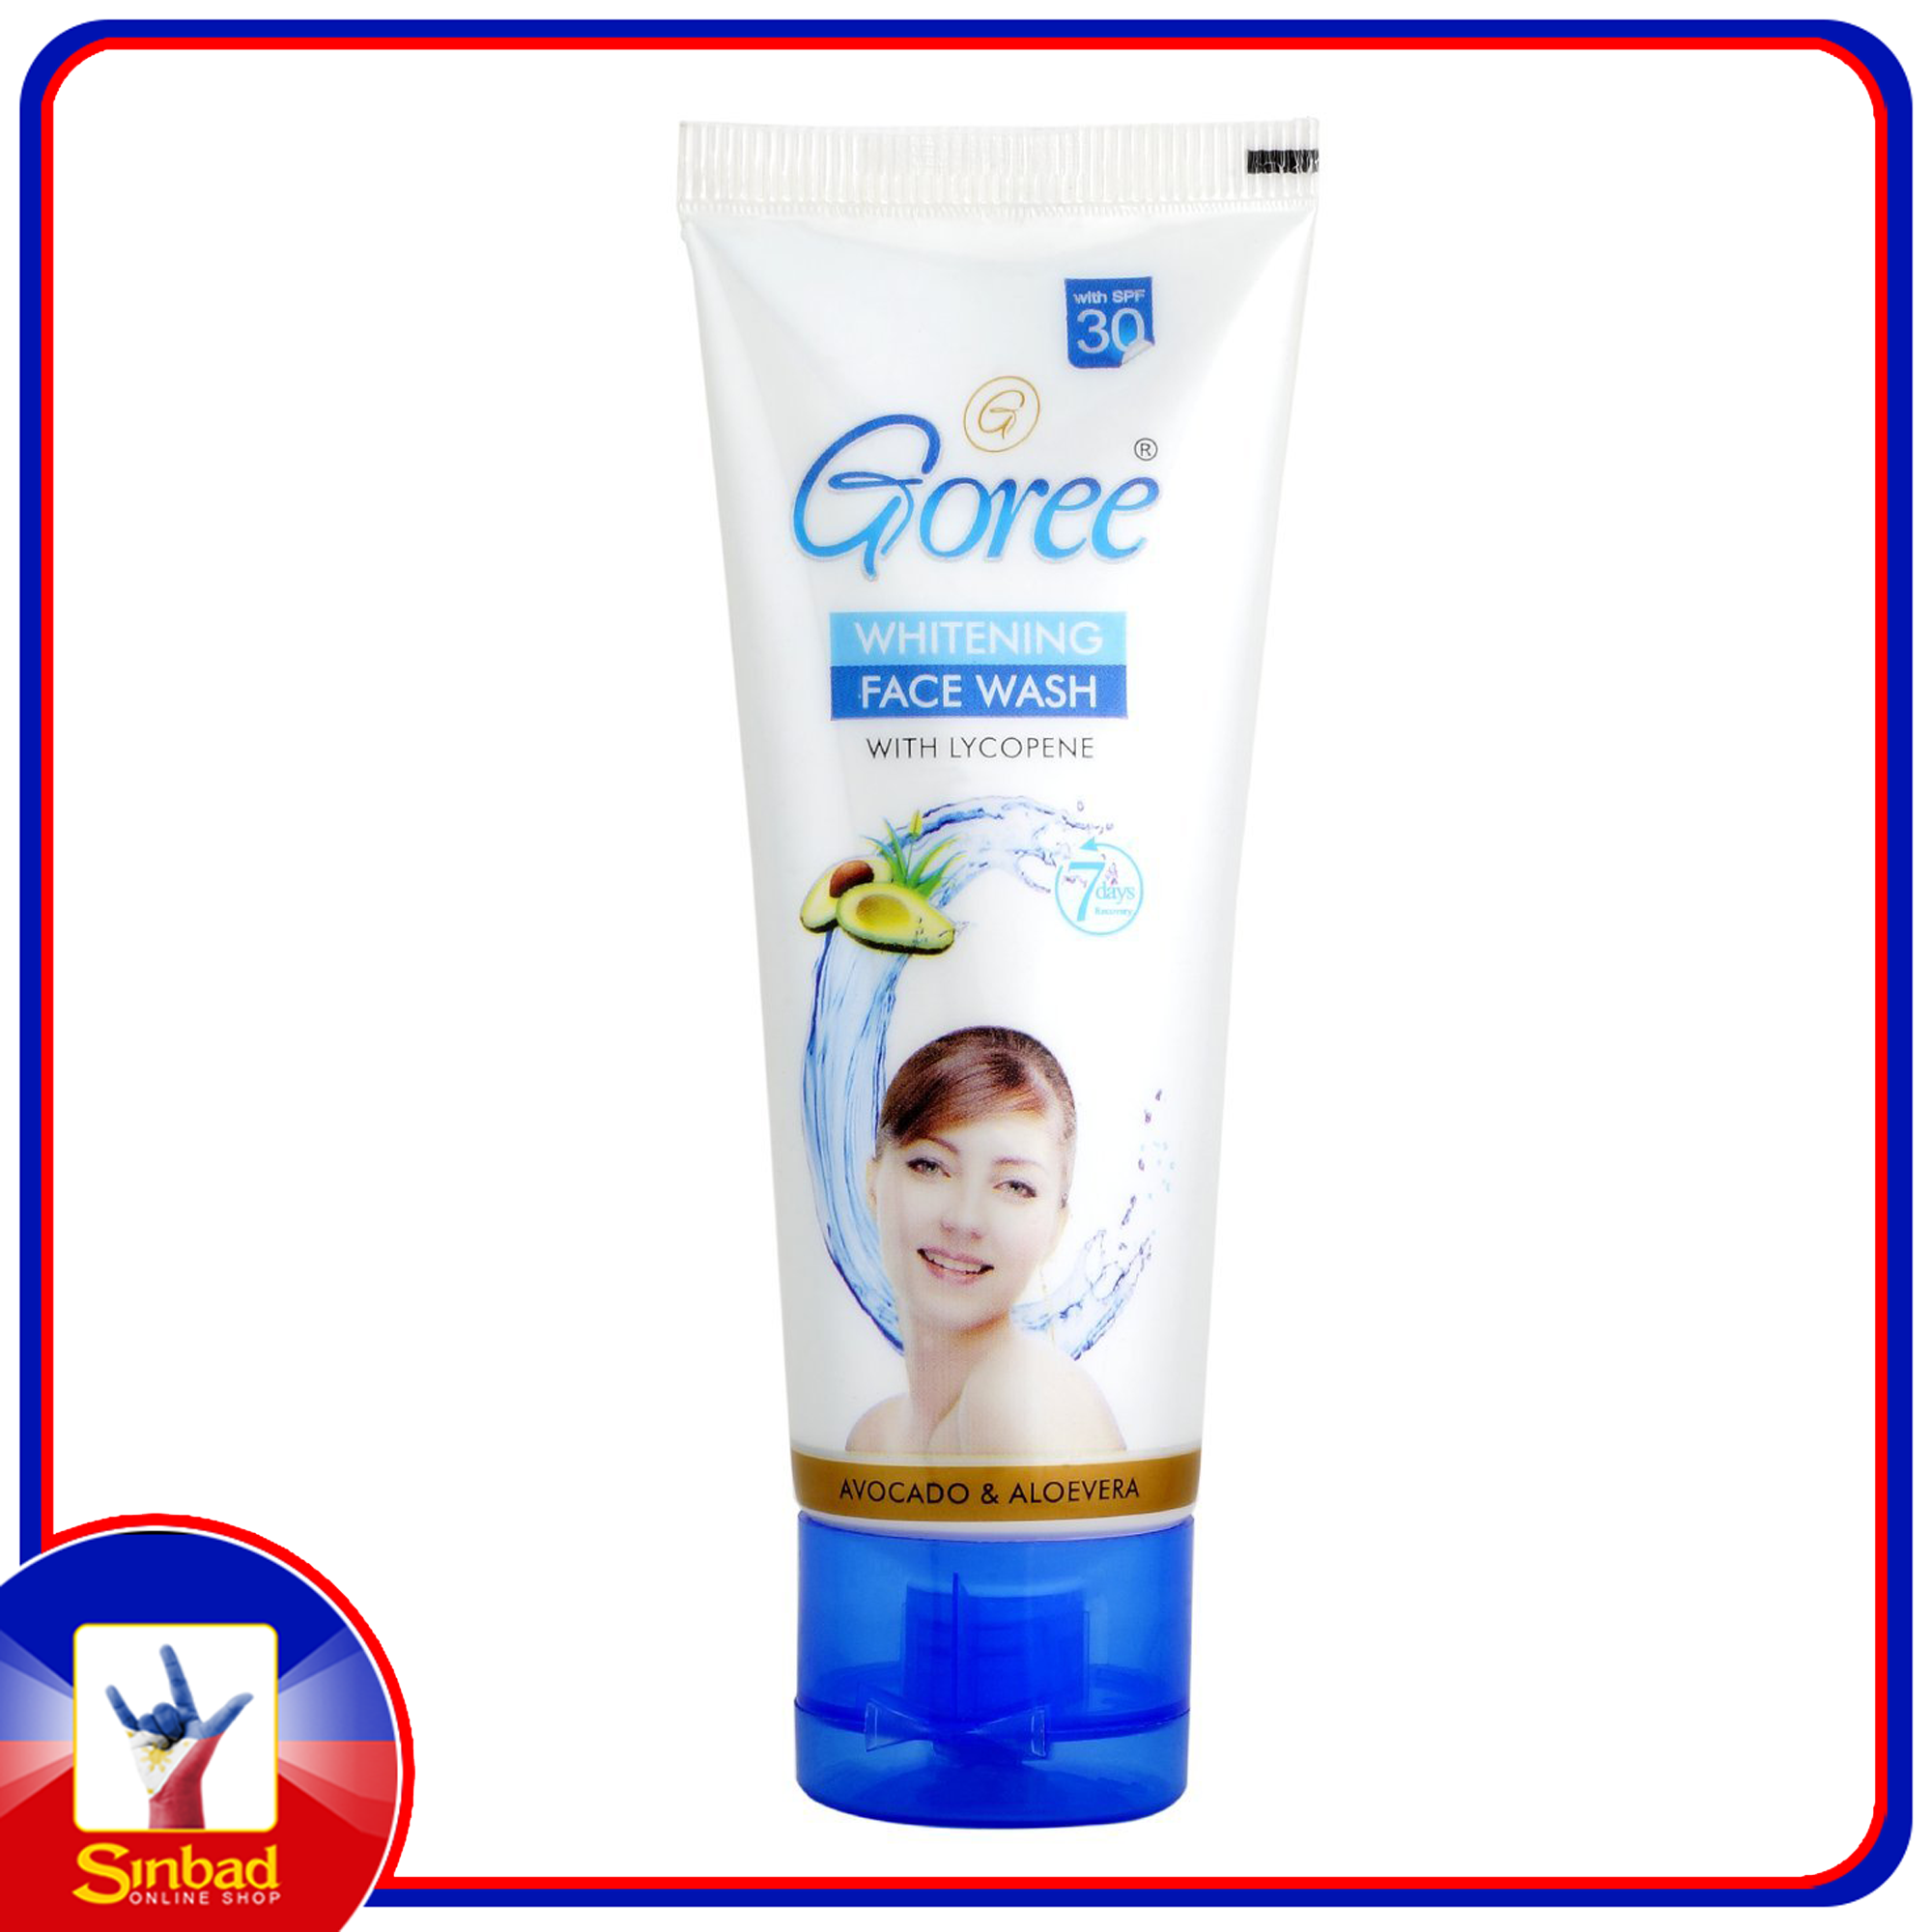 Goree Whitening Face Wash